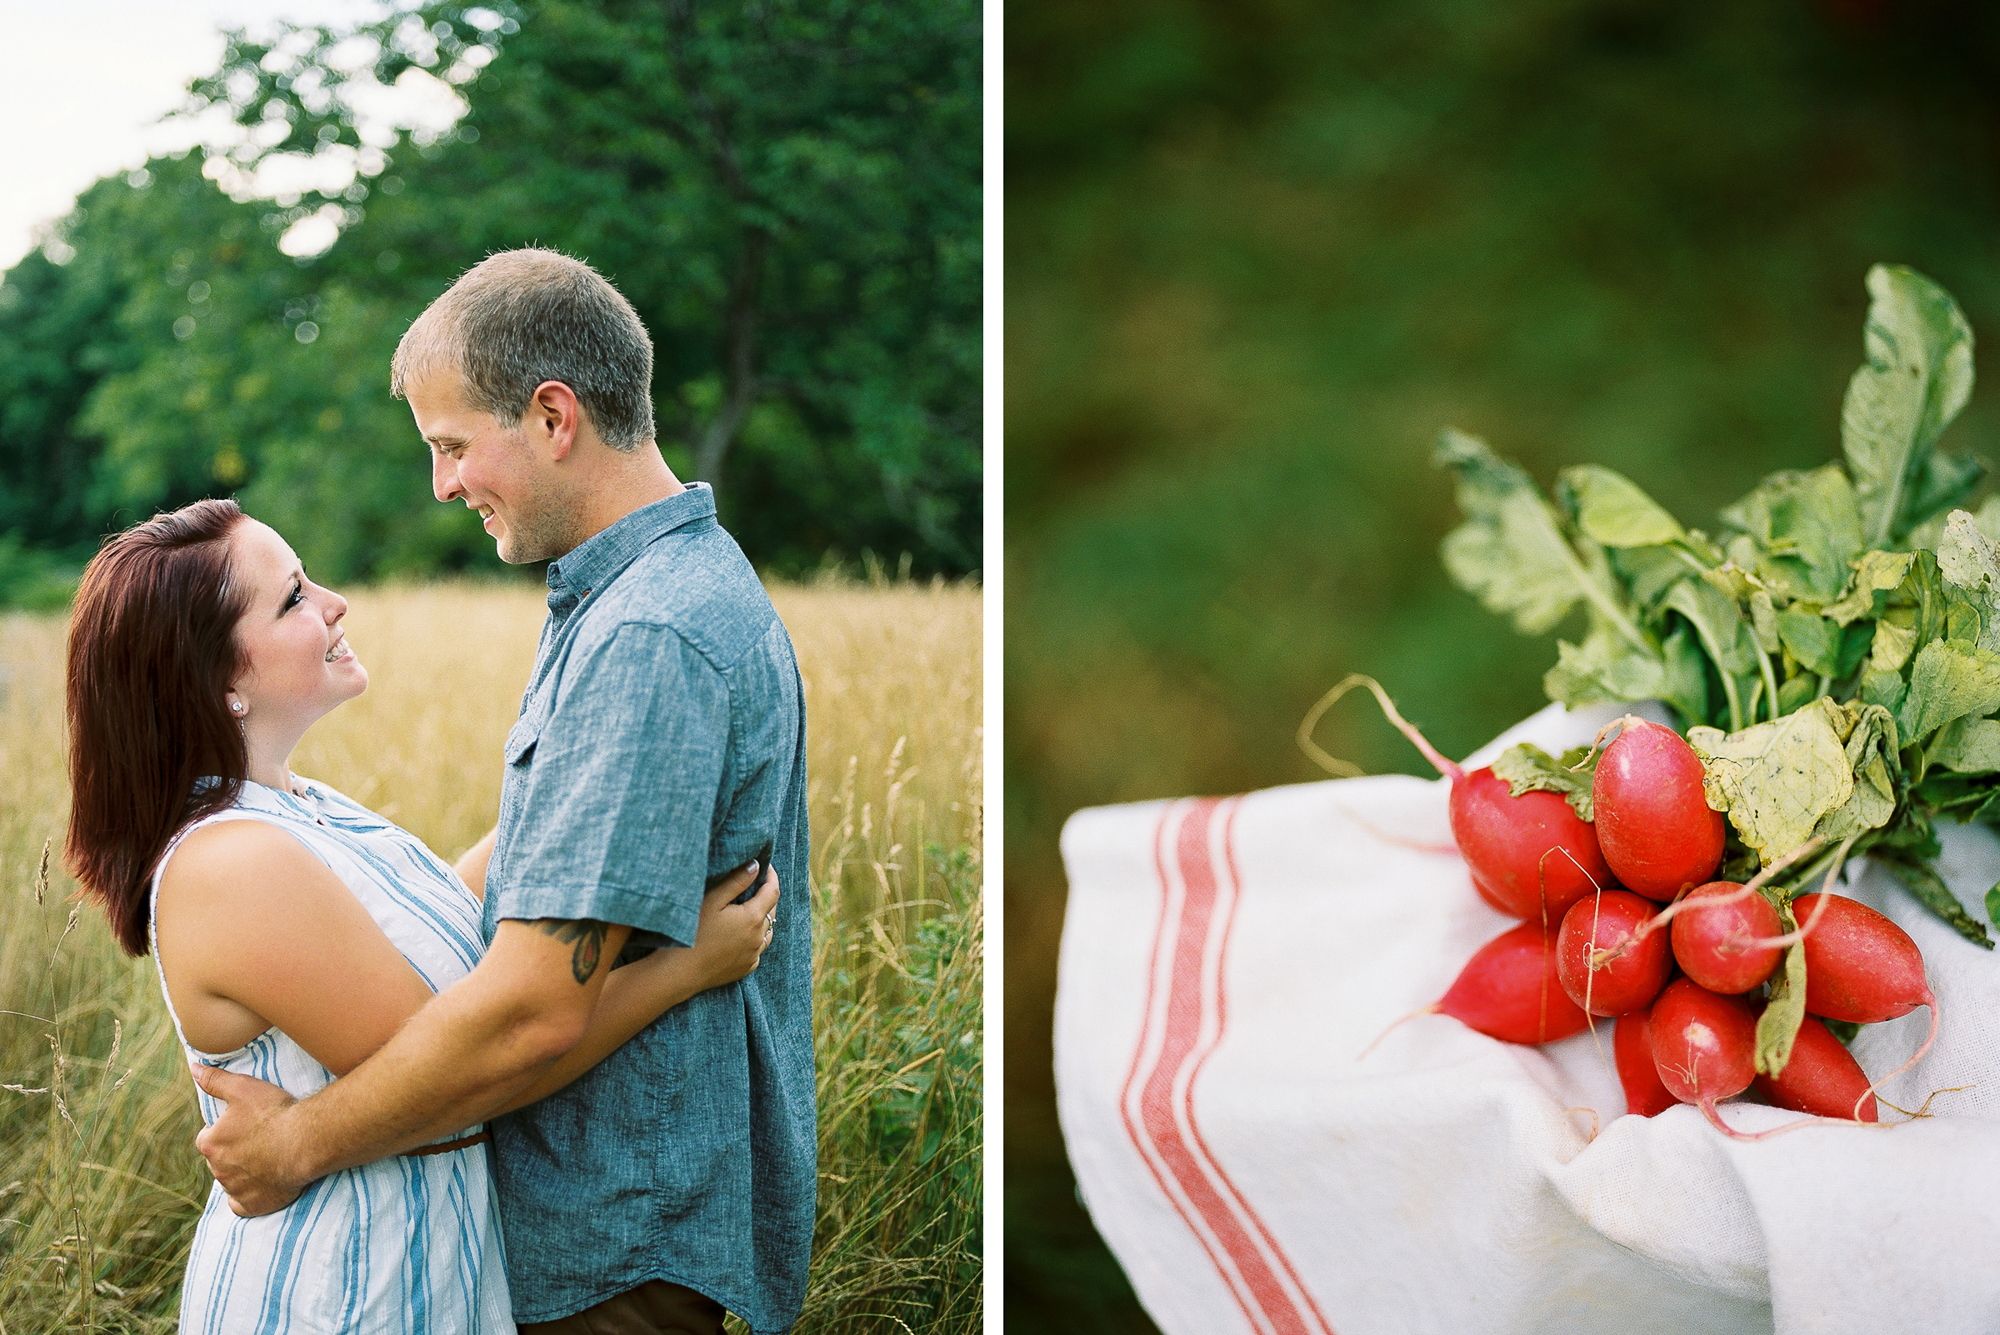 Alexandra-Elise-Photography-Ali-Reed-Film-Farm-Engagement-Session-021